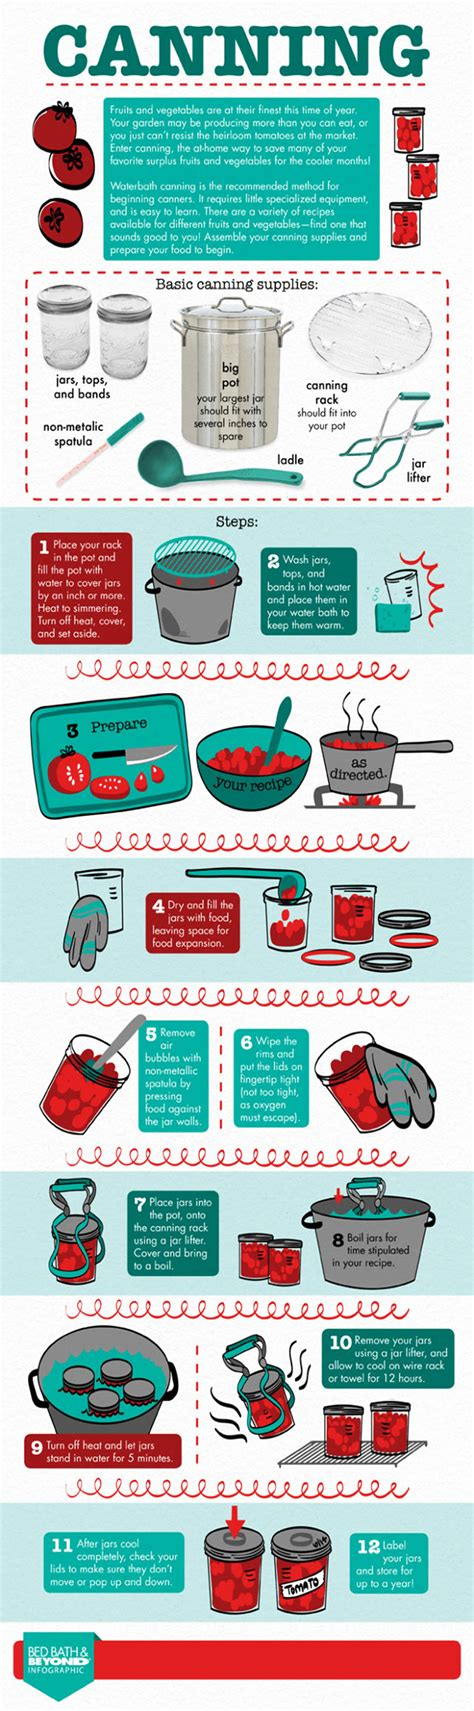 Kitchen Knives Ratings the canning process for food preservation infographic